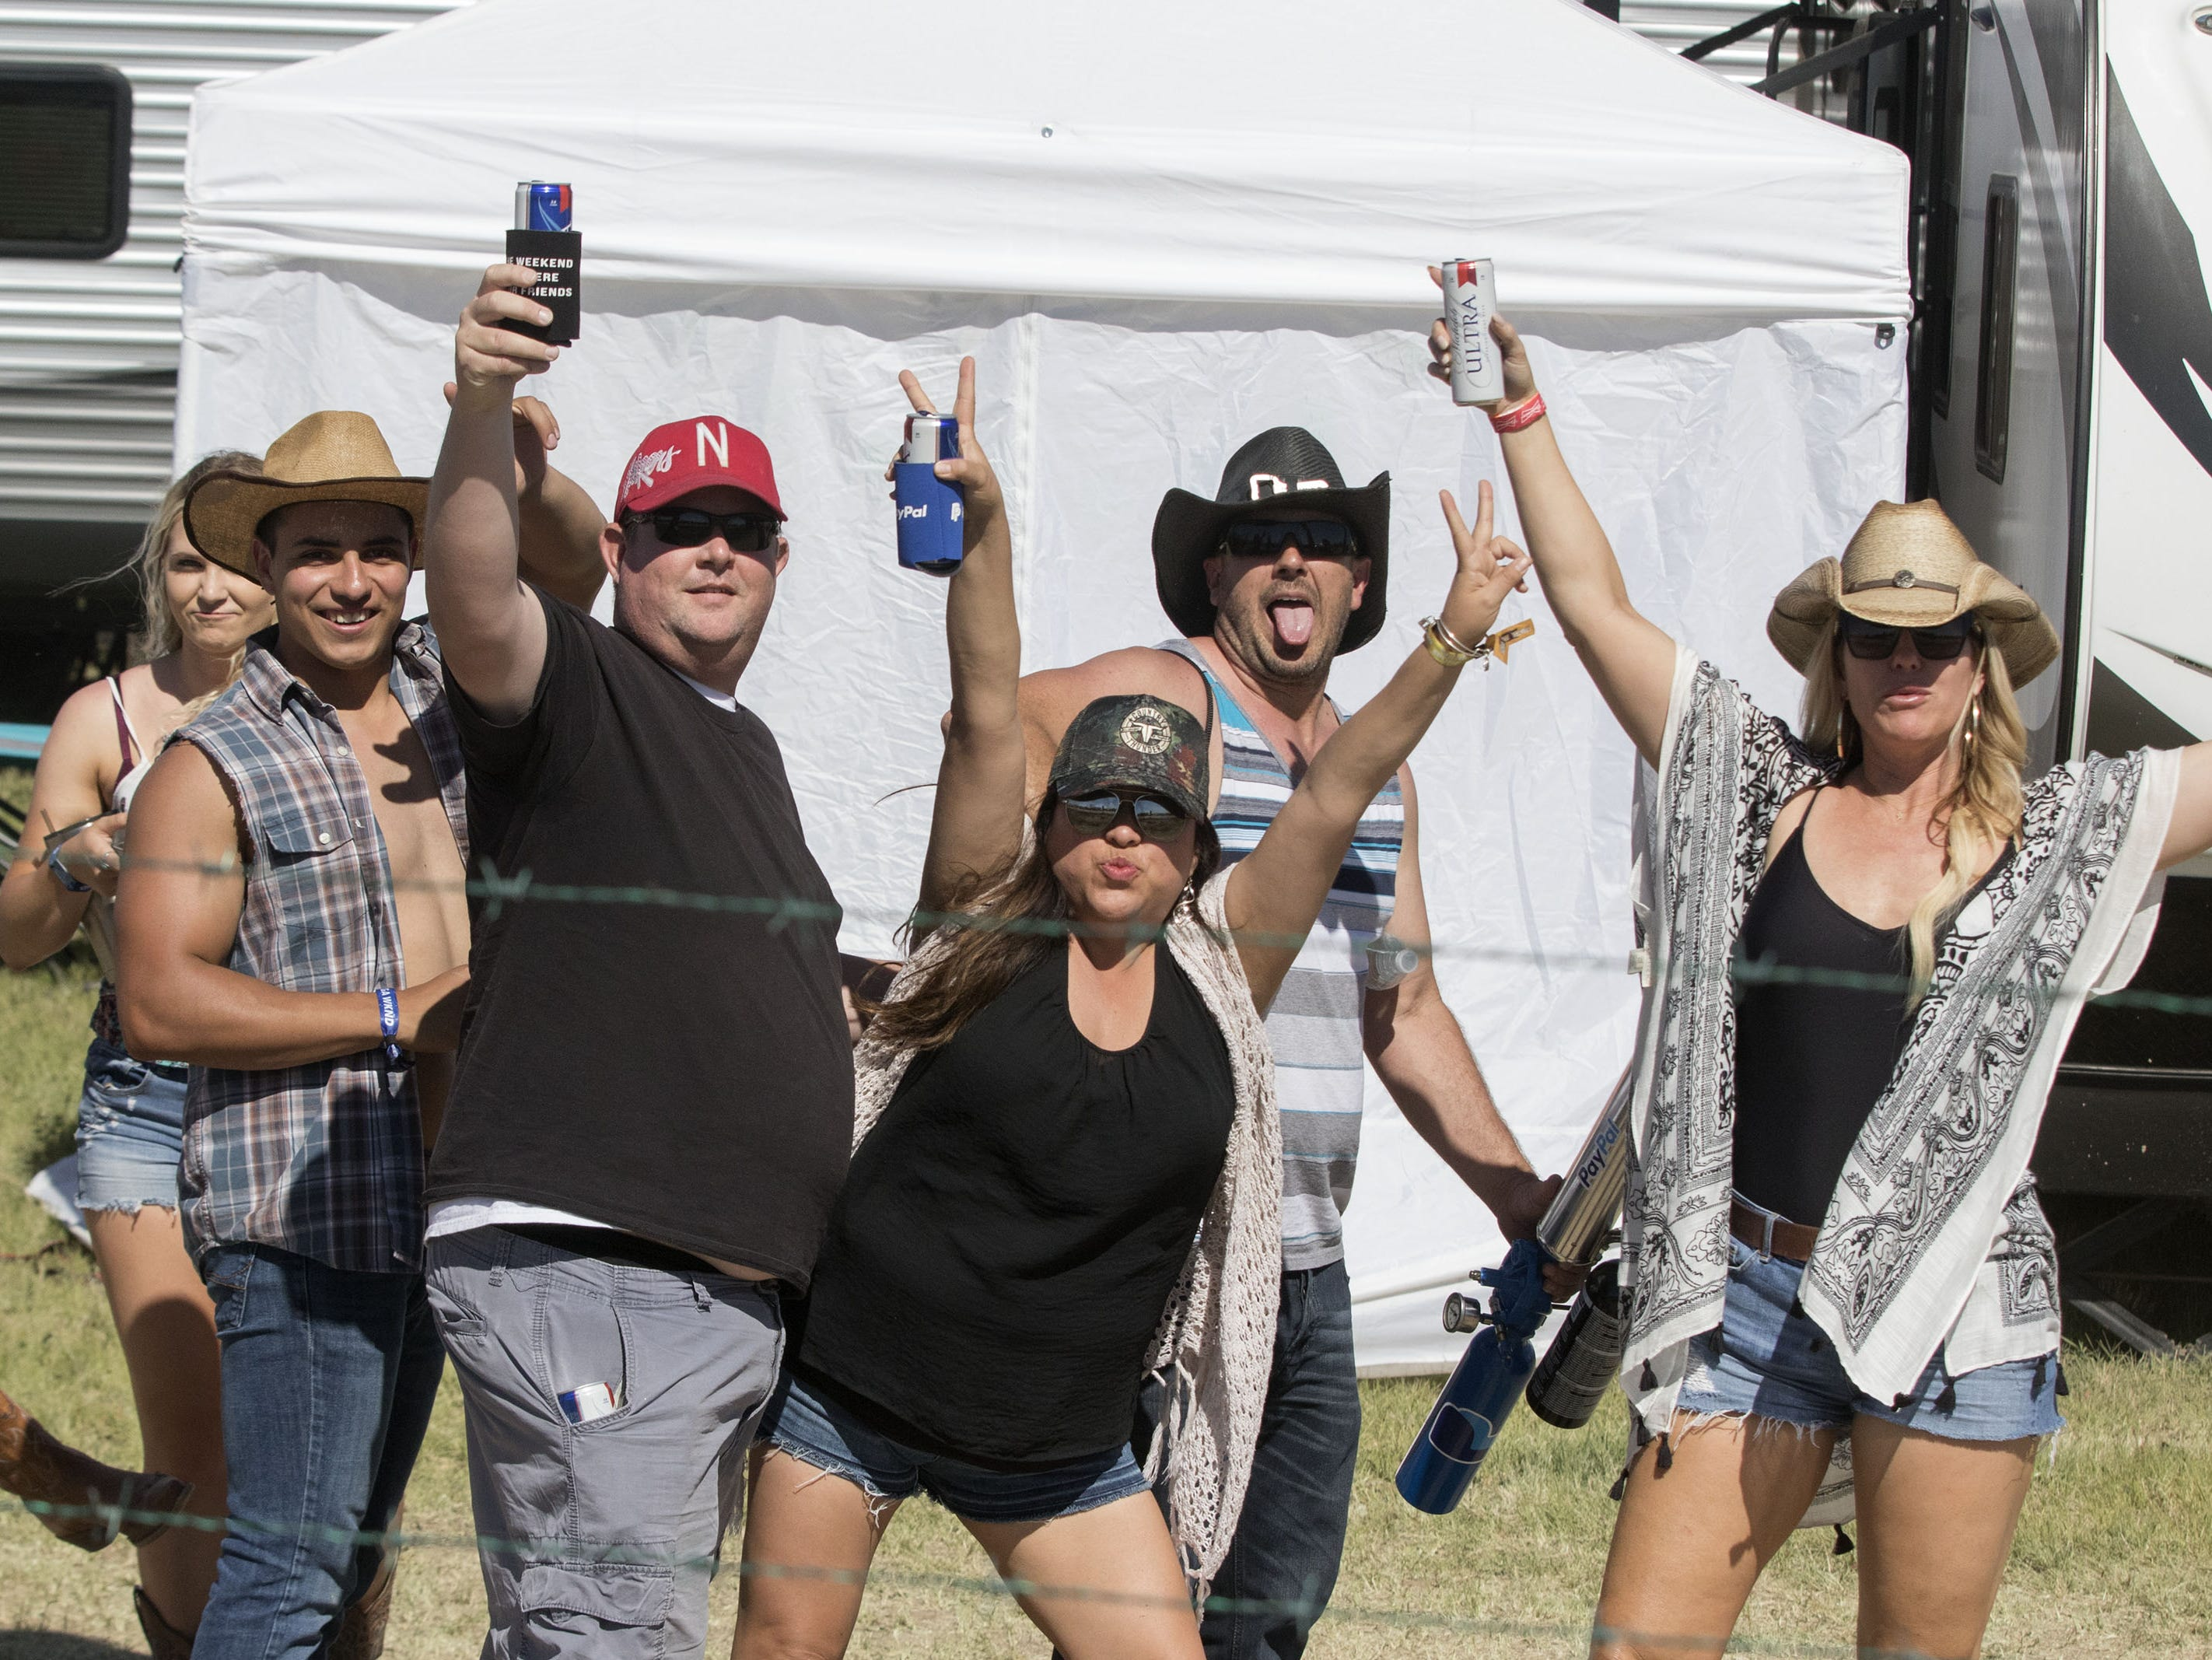 Festival-goers pose for a portrait during Country Thunder Arizona Saturday, April 13, 2019, in Florence, Ariz.